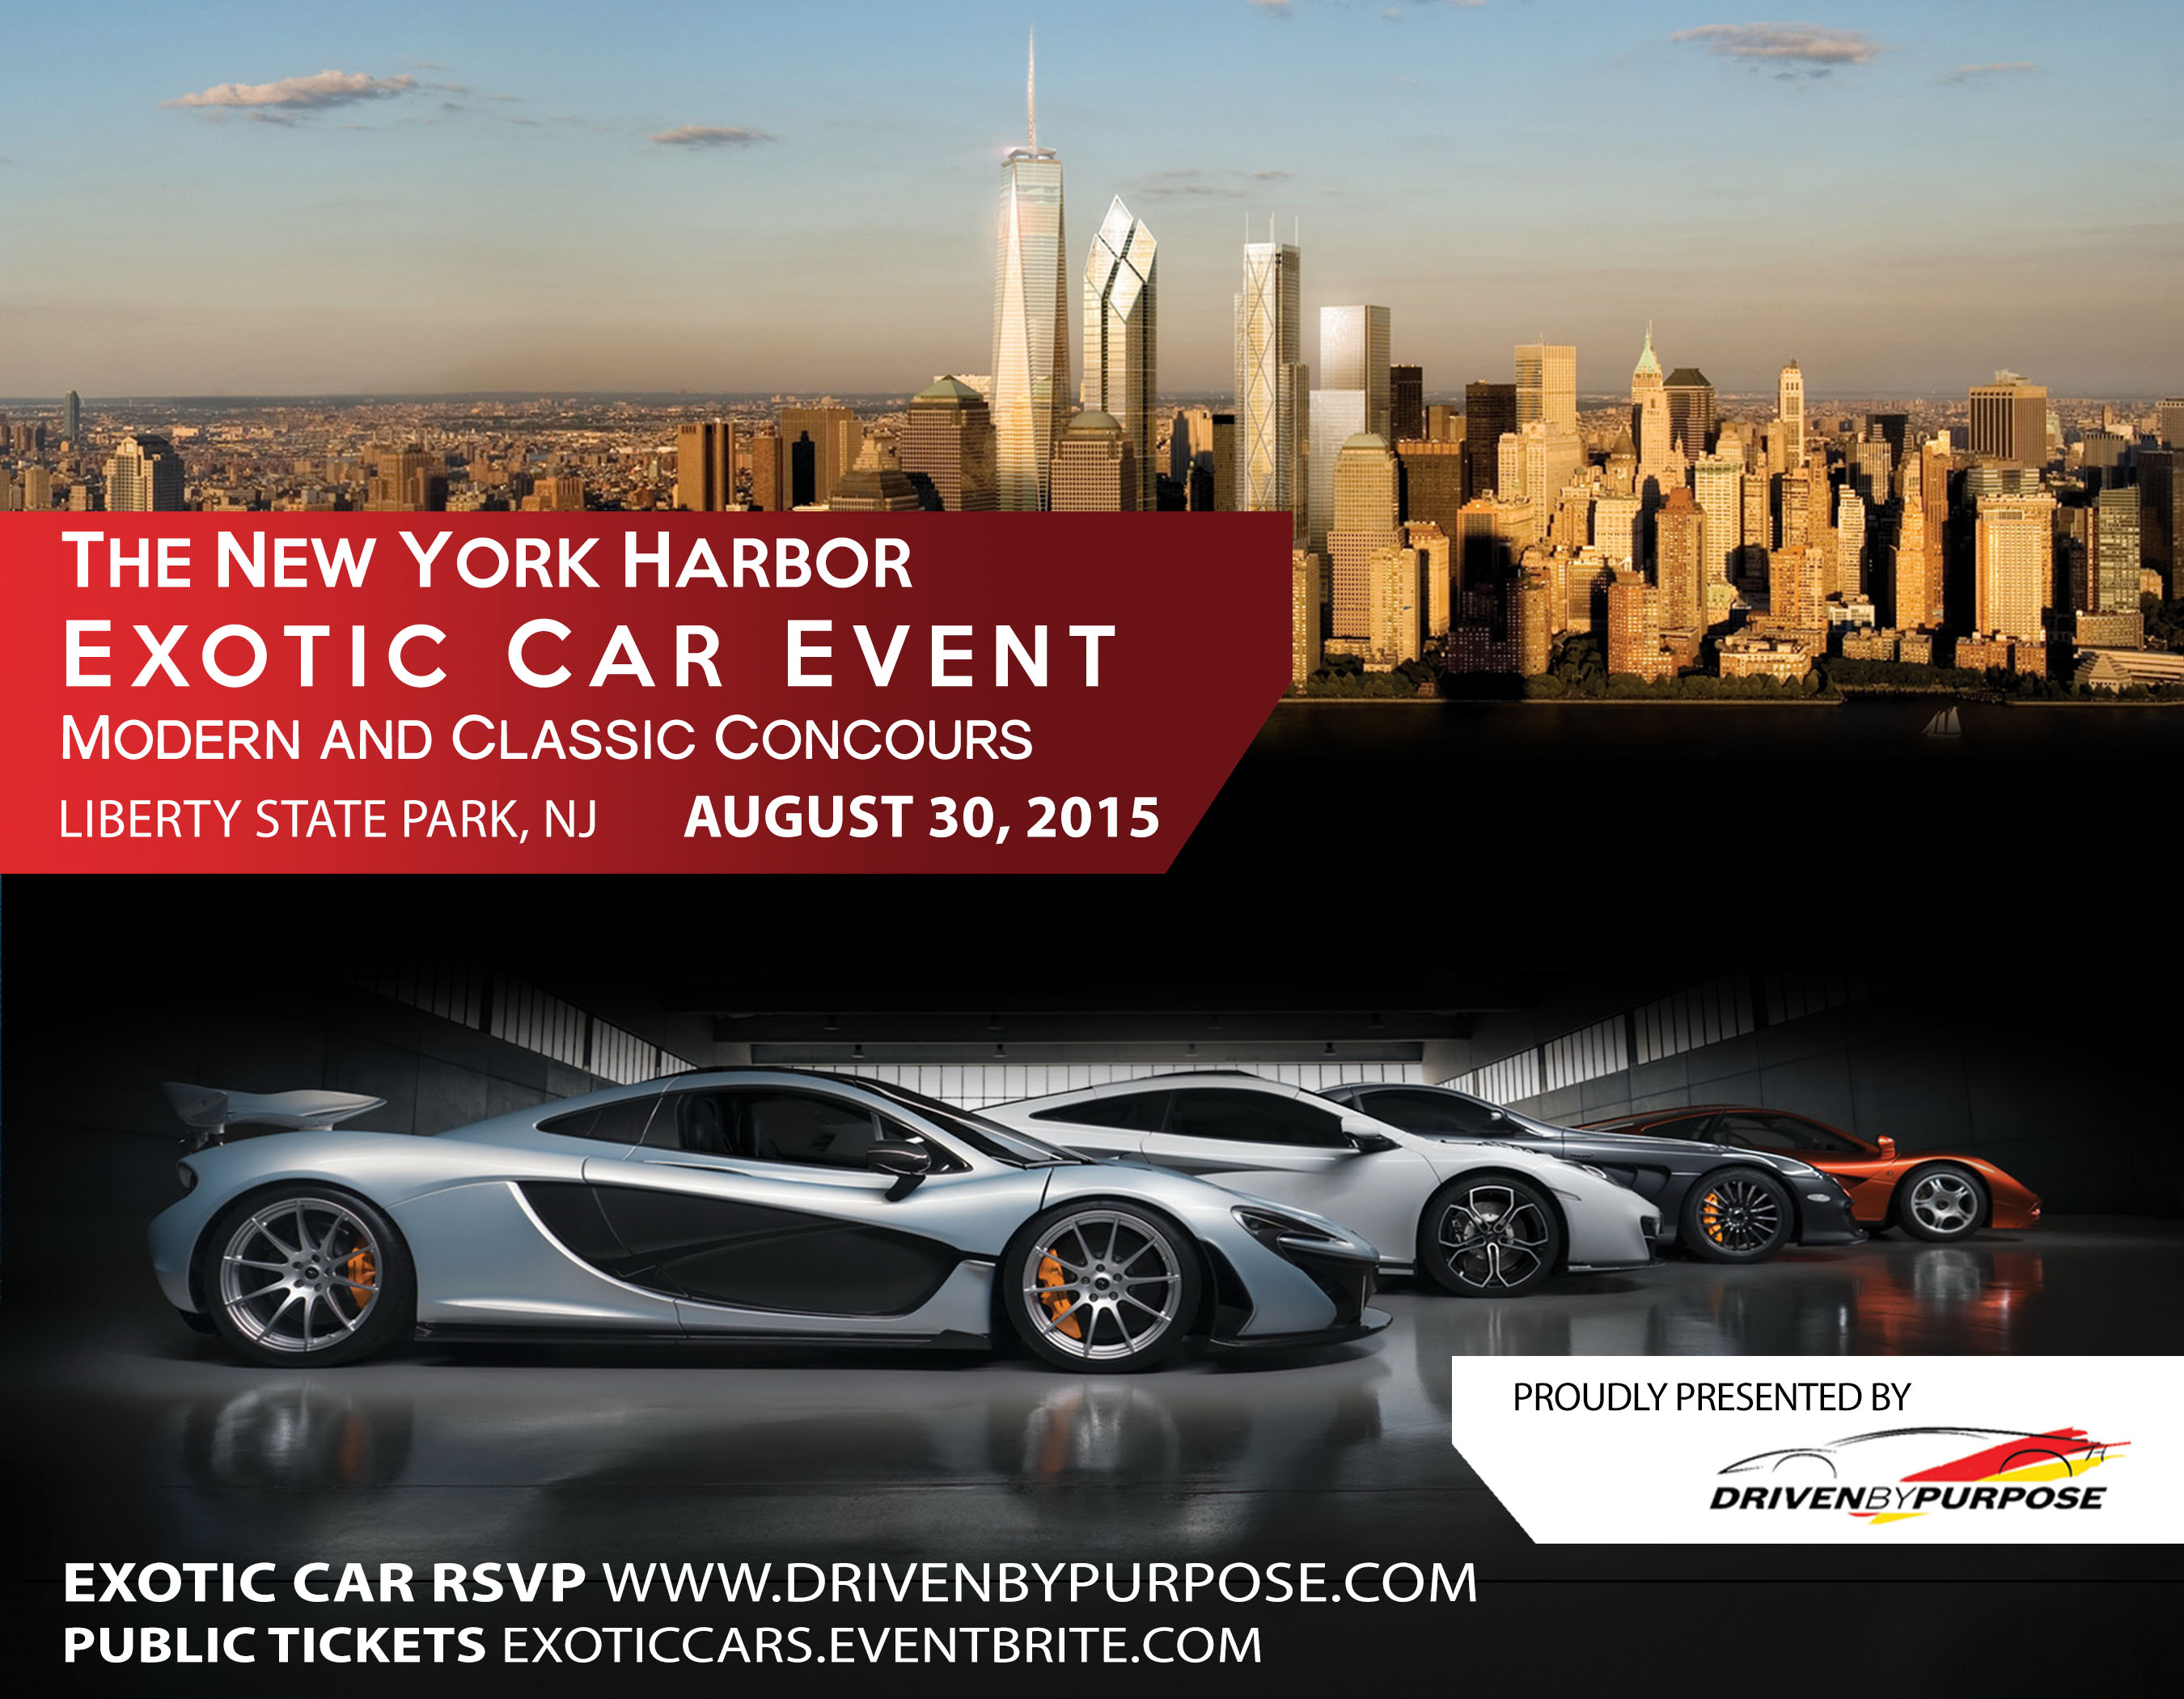 New York Harbor Exotic Car Event